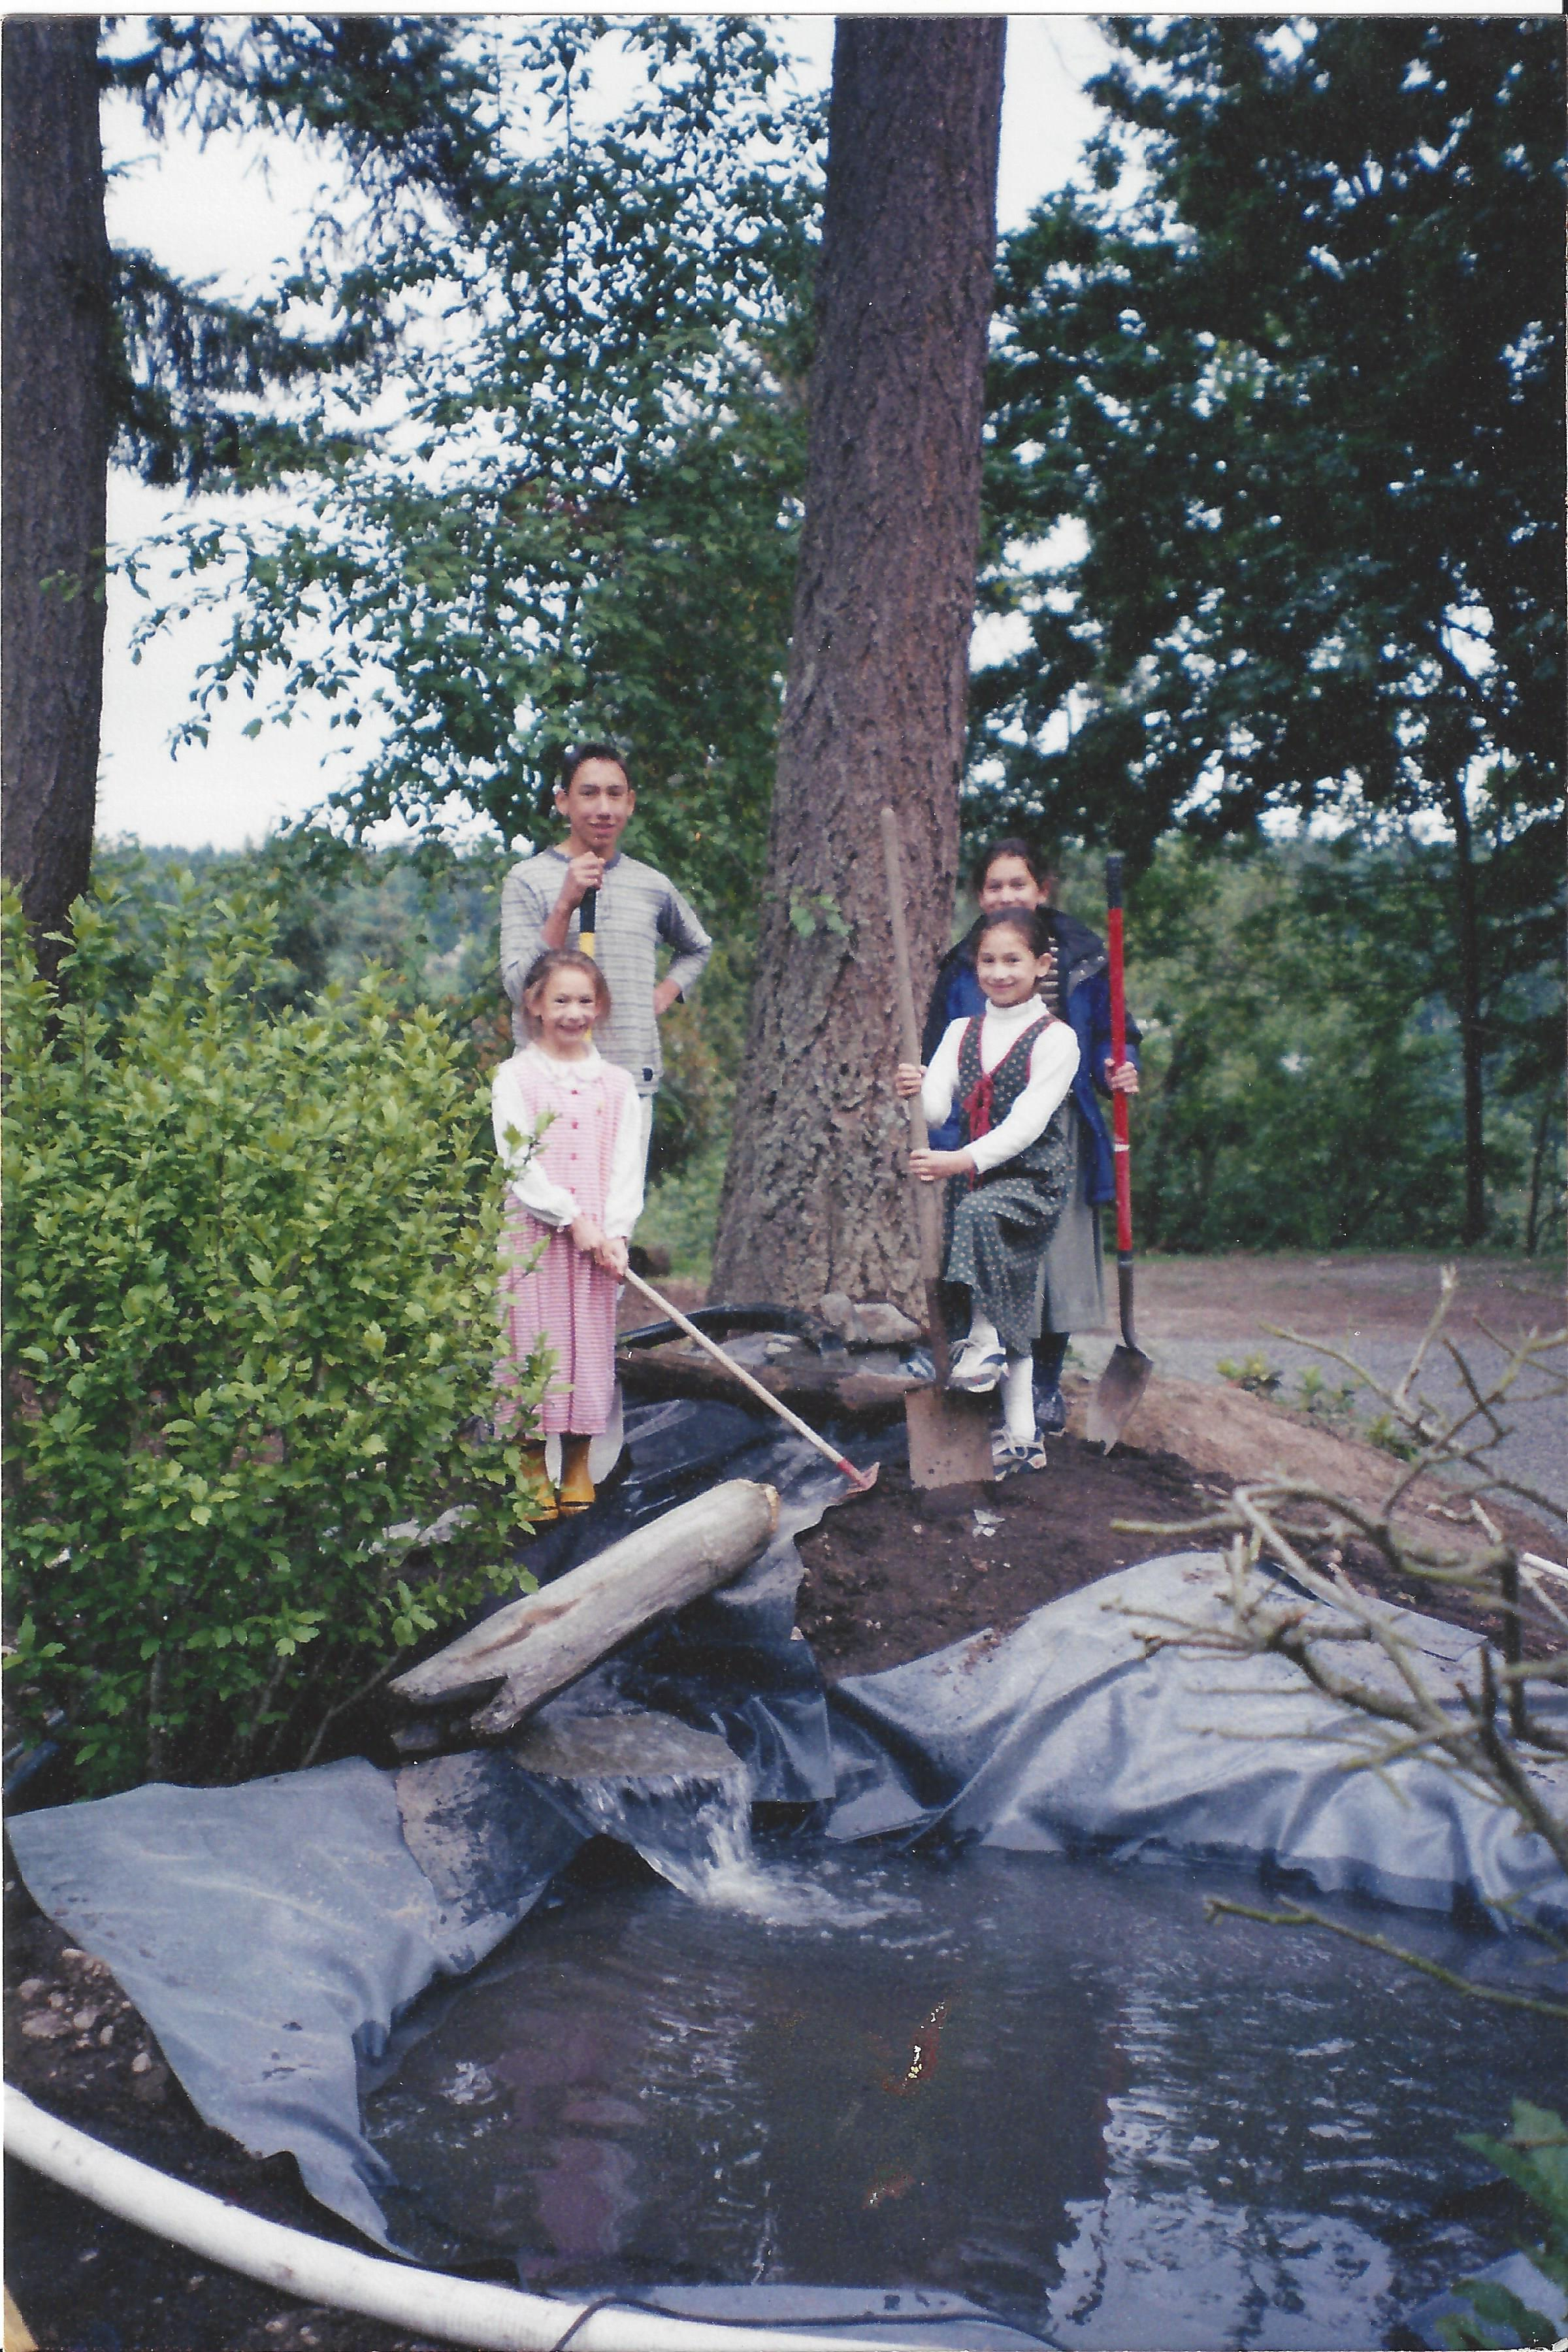 The Pond Kids' First Project - 2001